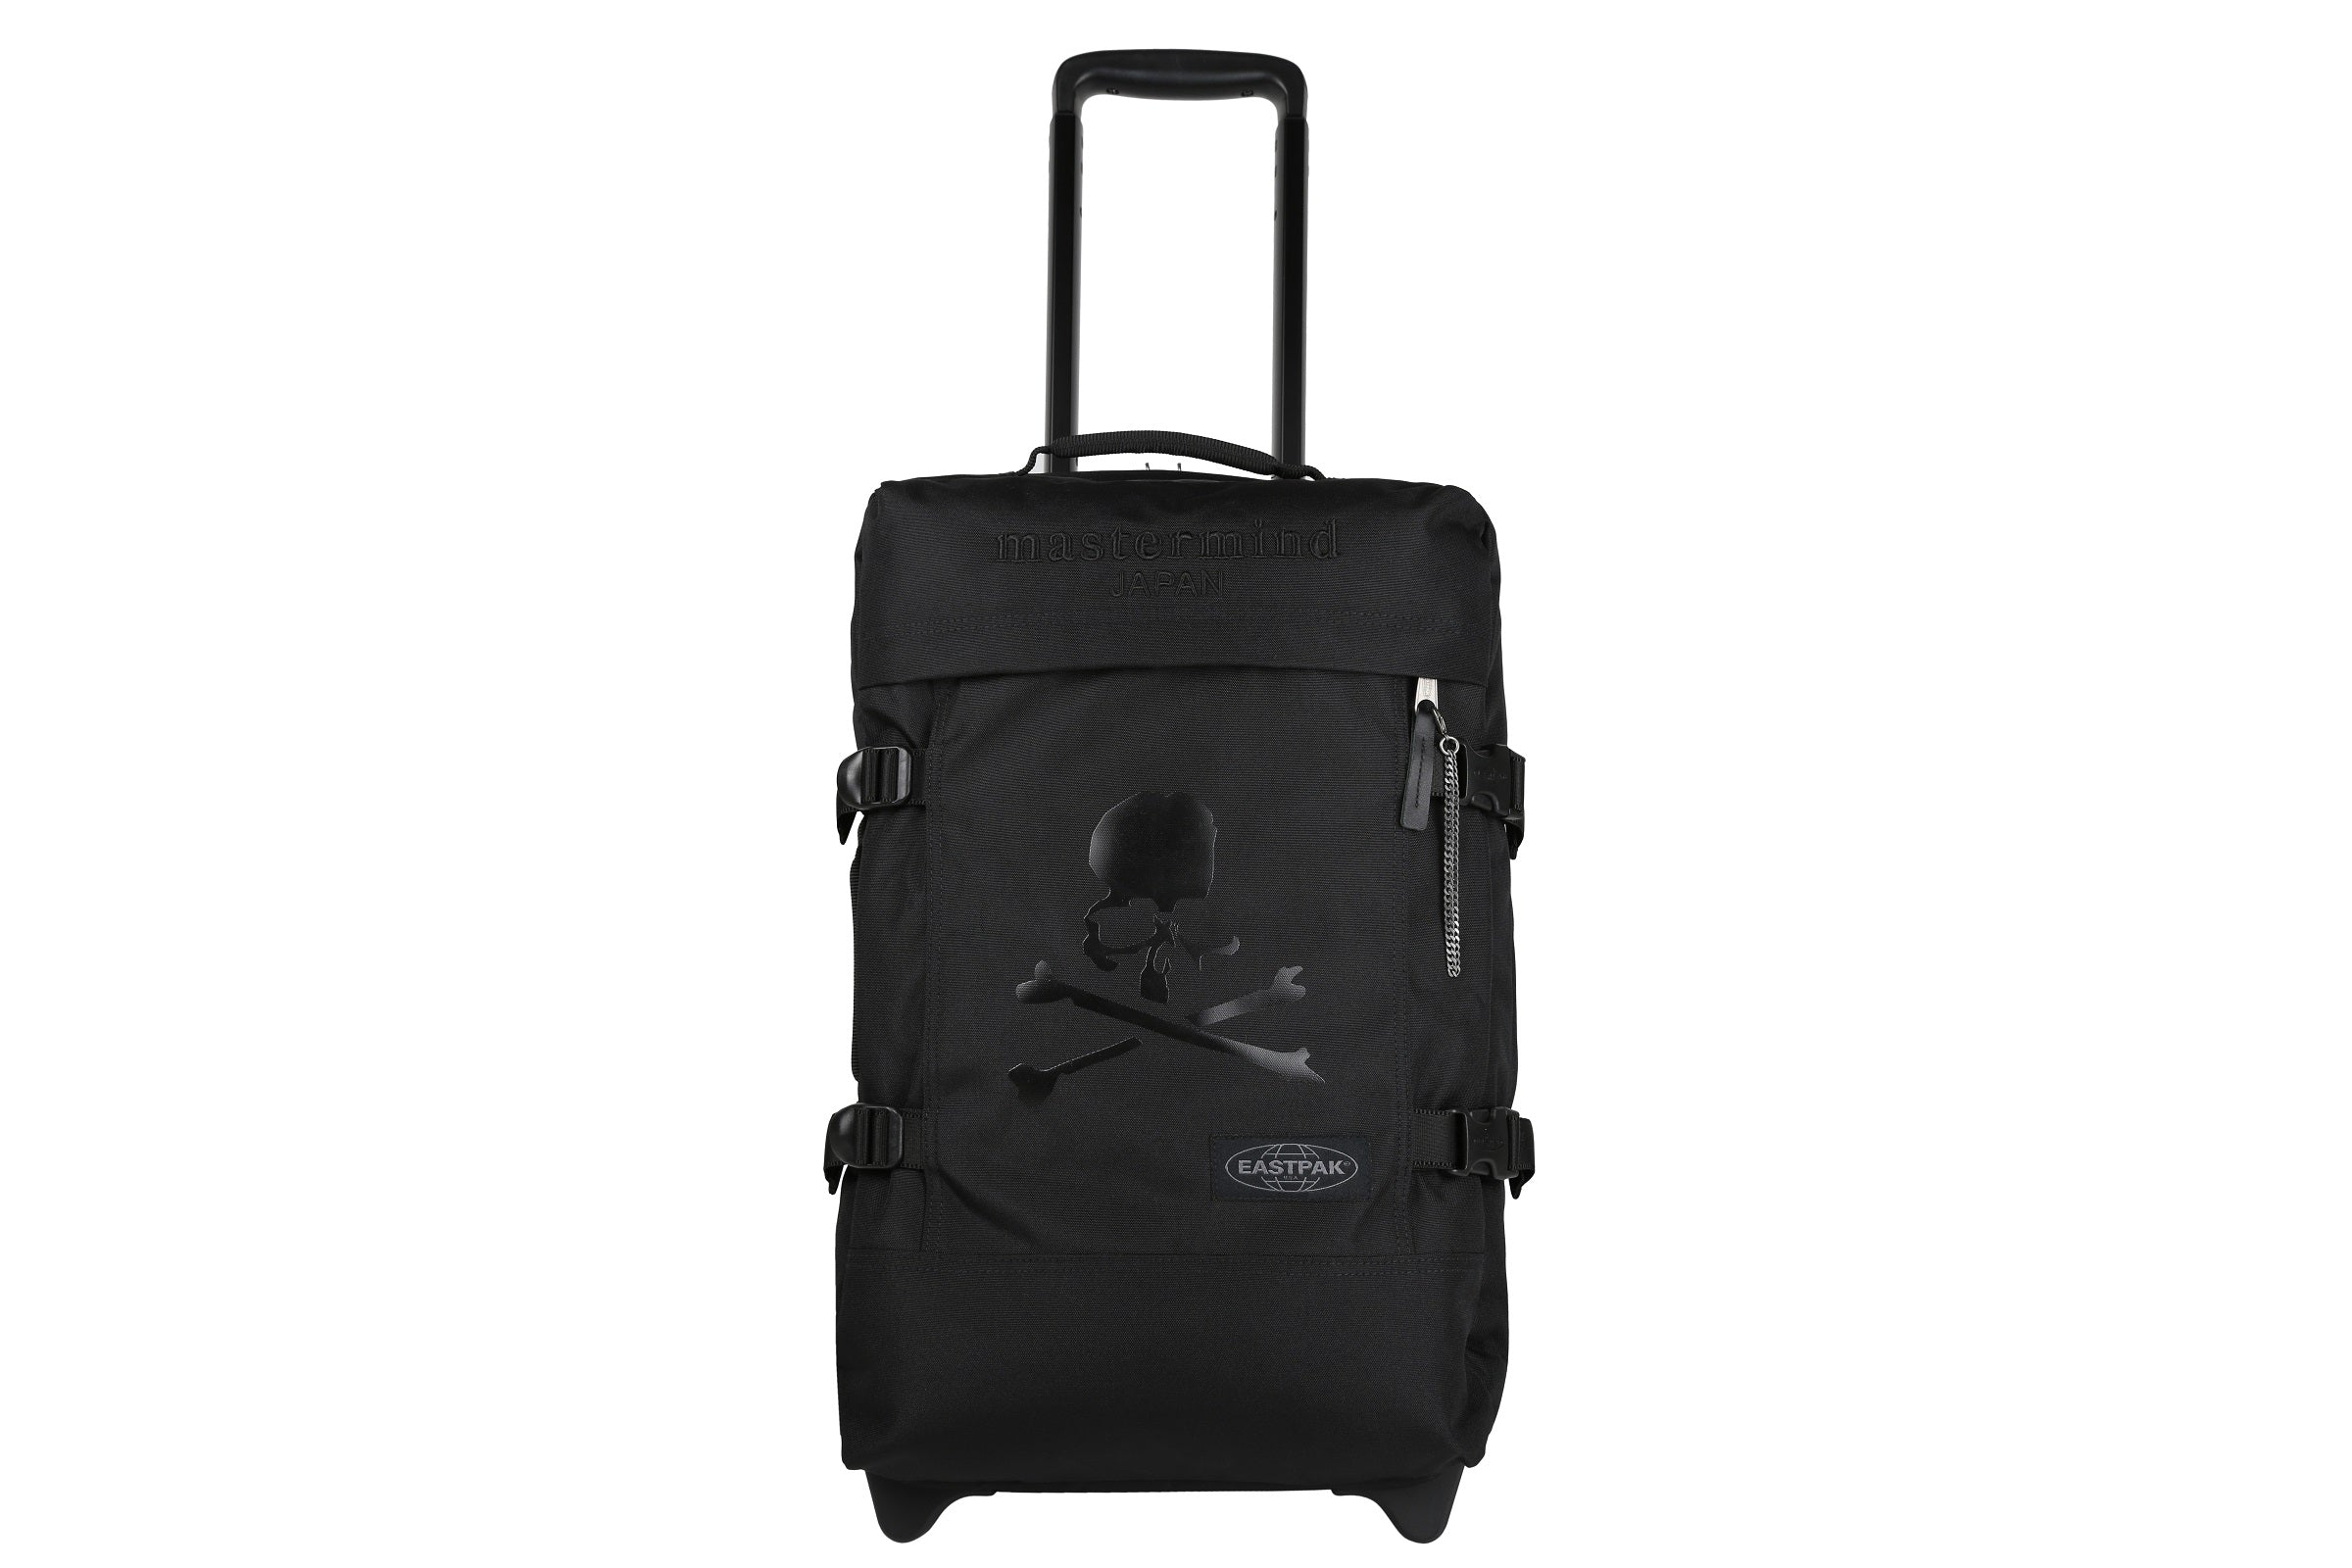 Eastpak 42L Tranverz Travel Case x Mastermind